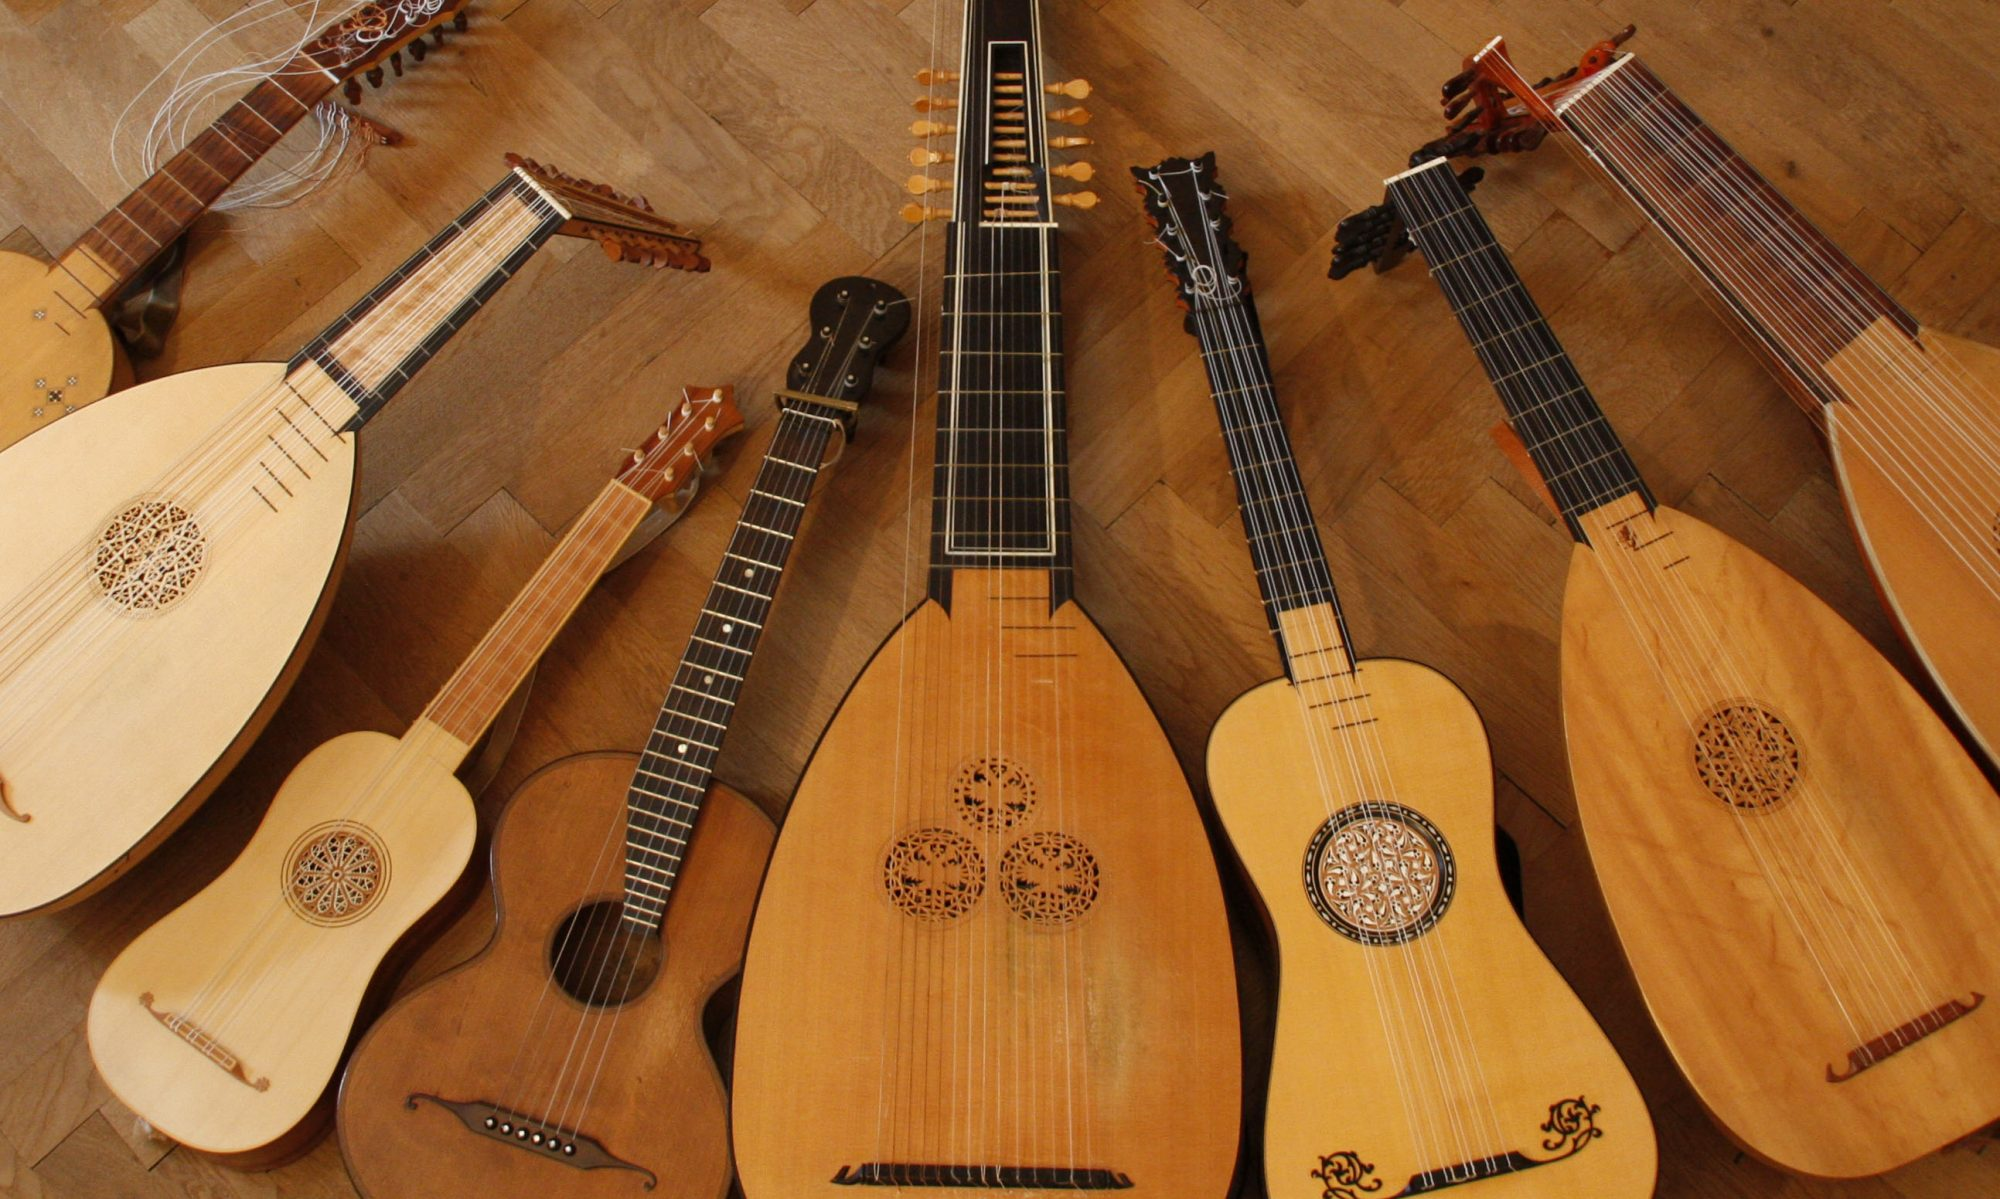 Lutes, Guitars, Telescopes and more